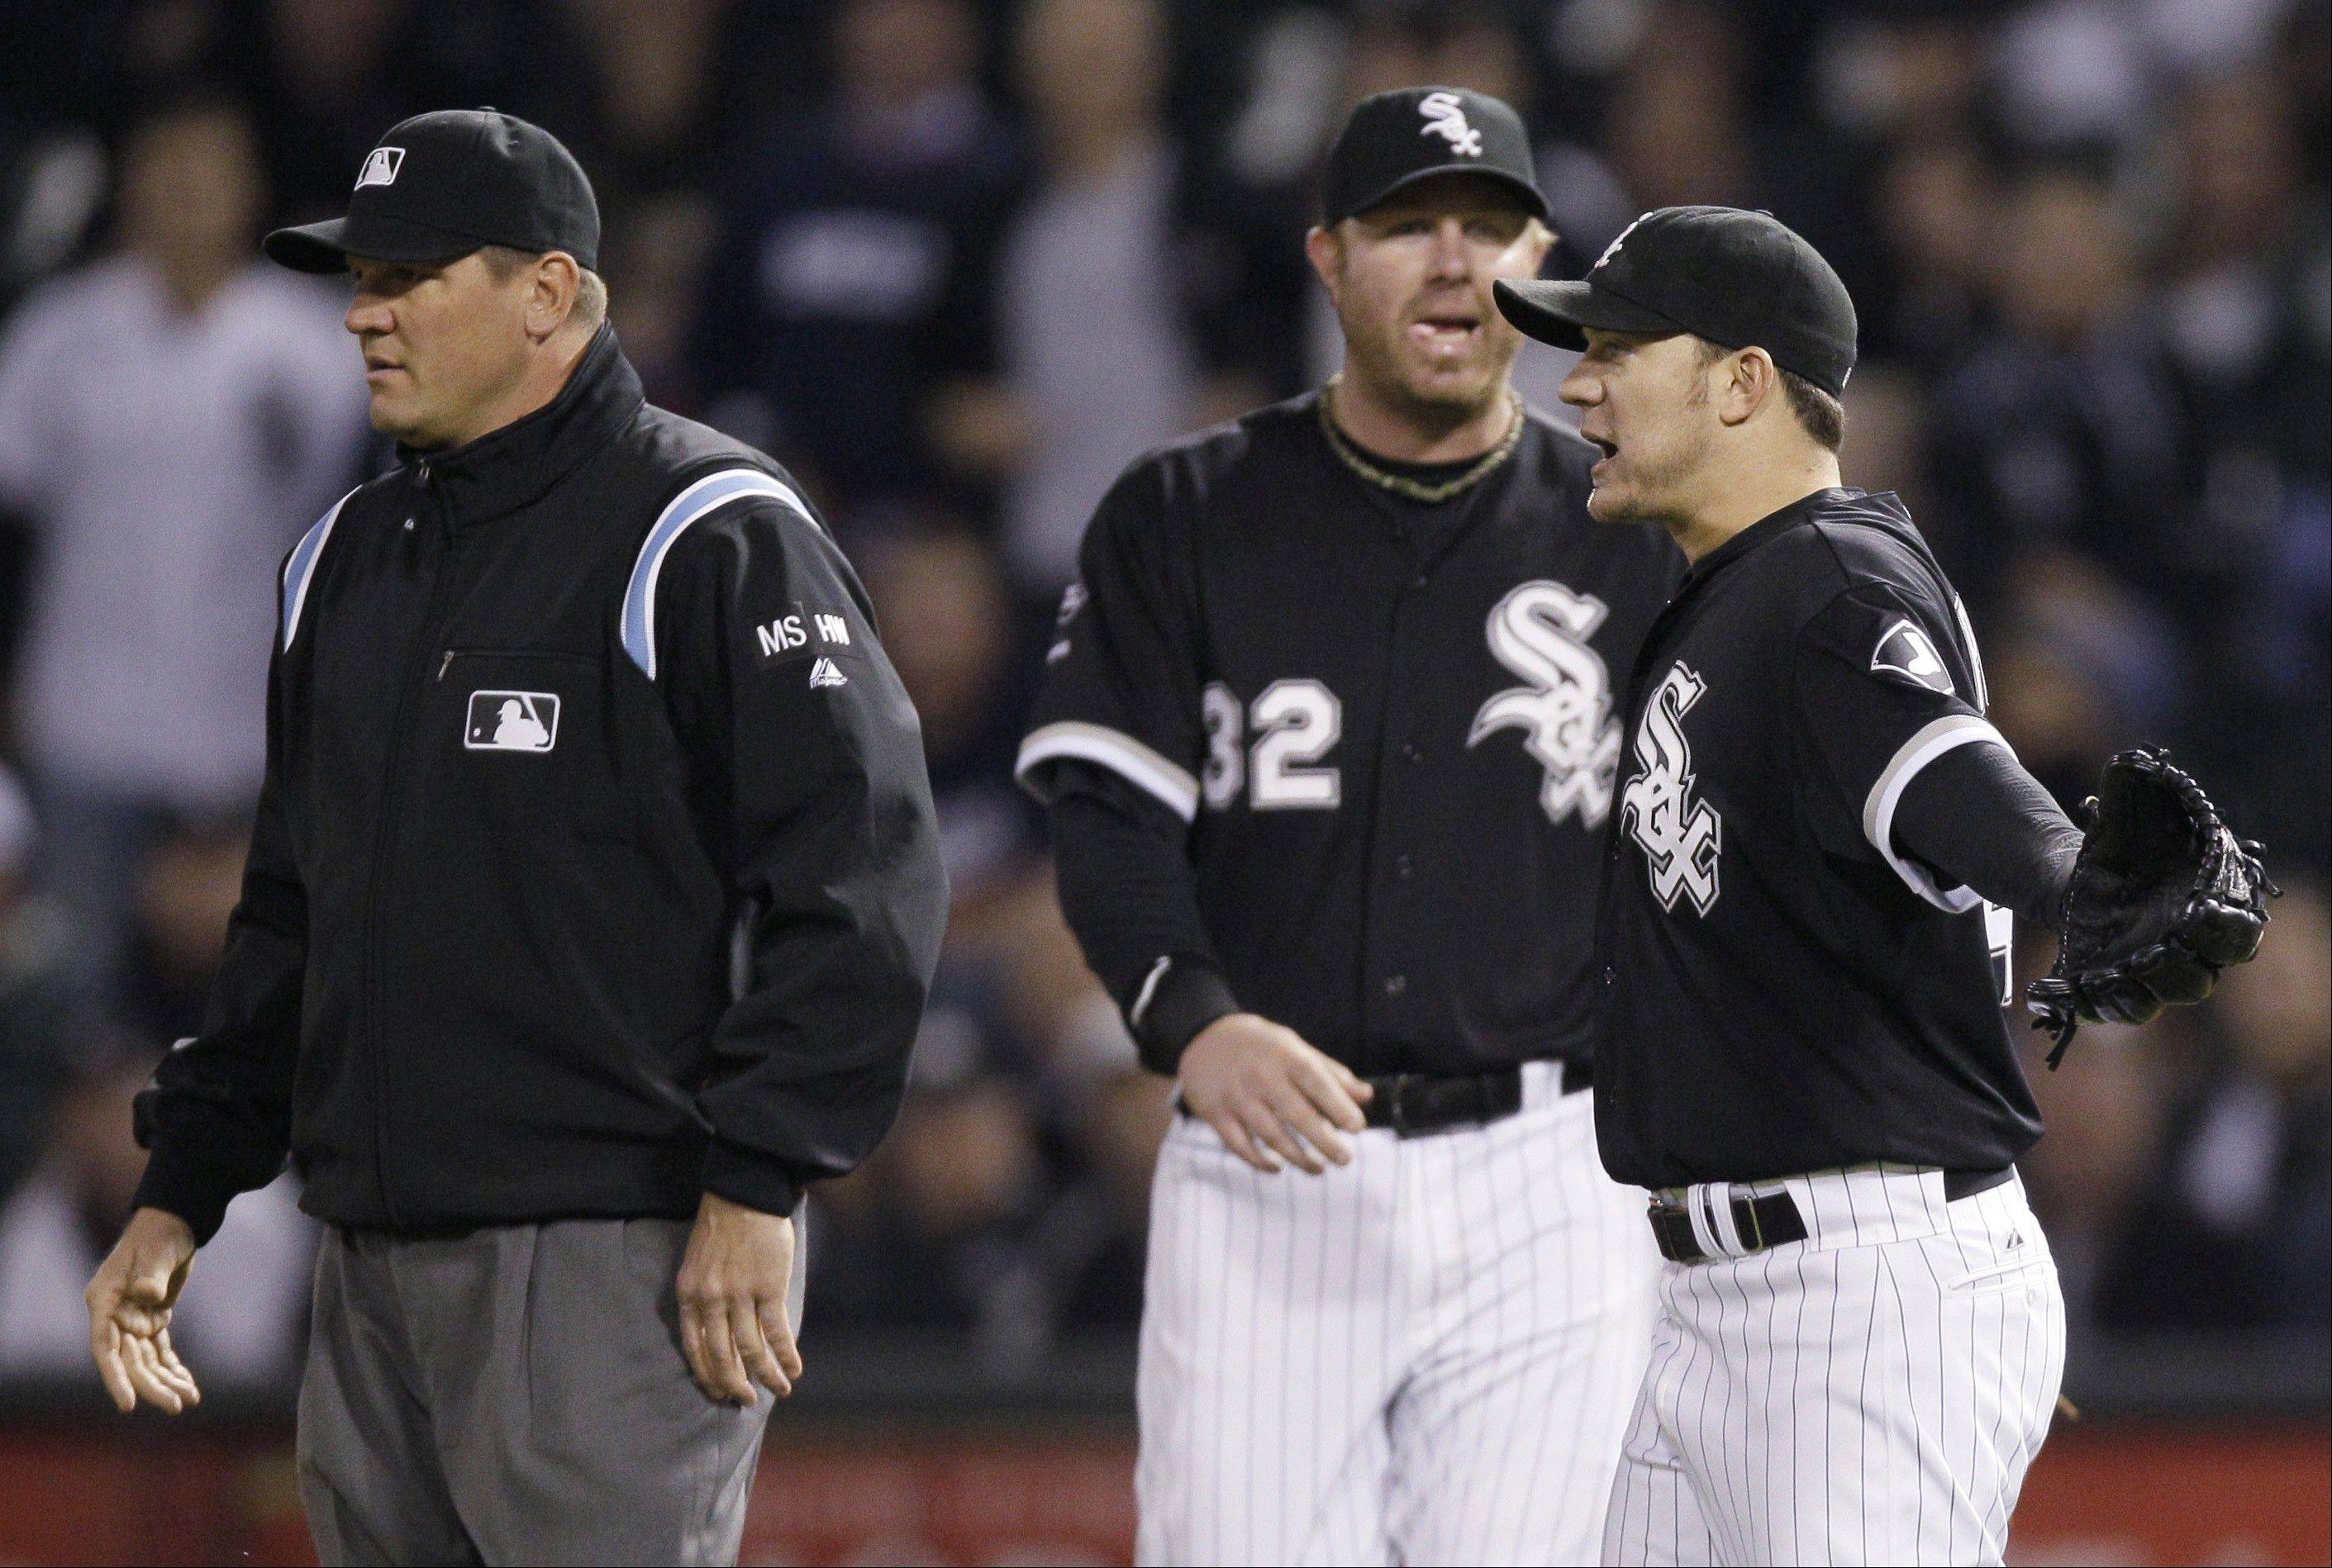 White Sox pitcher Jake Peavy reacts Thursday after being called for a balk against the Tampa Bay Rays during the second inning at U.S. Cellular Field. At left is first base umpire Chad Fairchild, who did not make the balk call. At center is Adam Dunn.